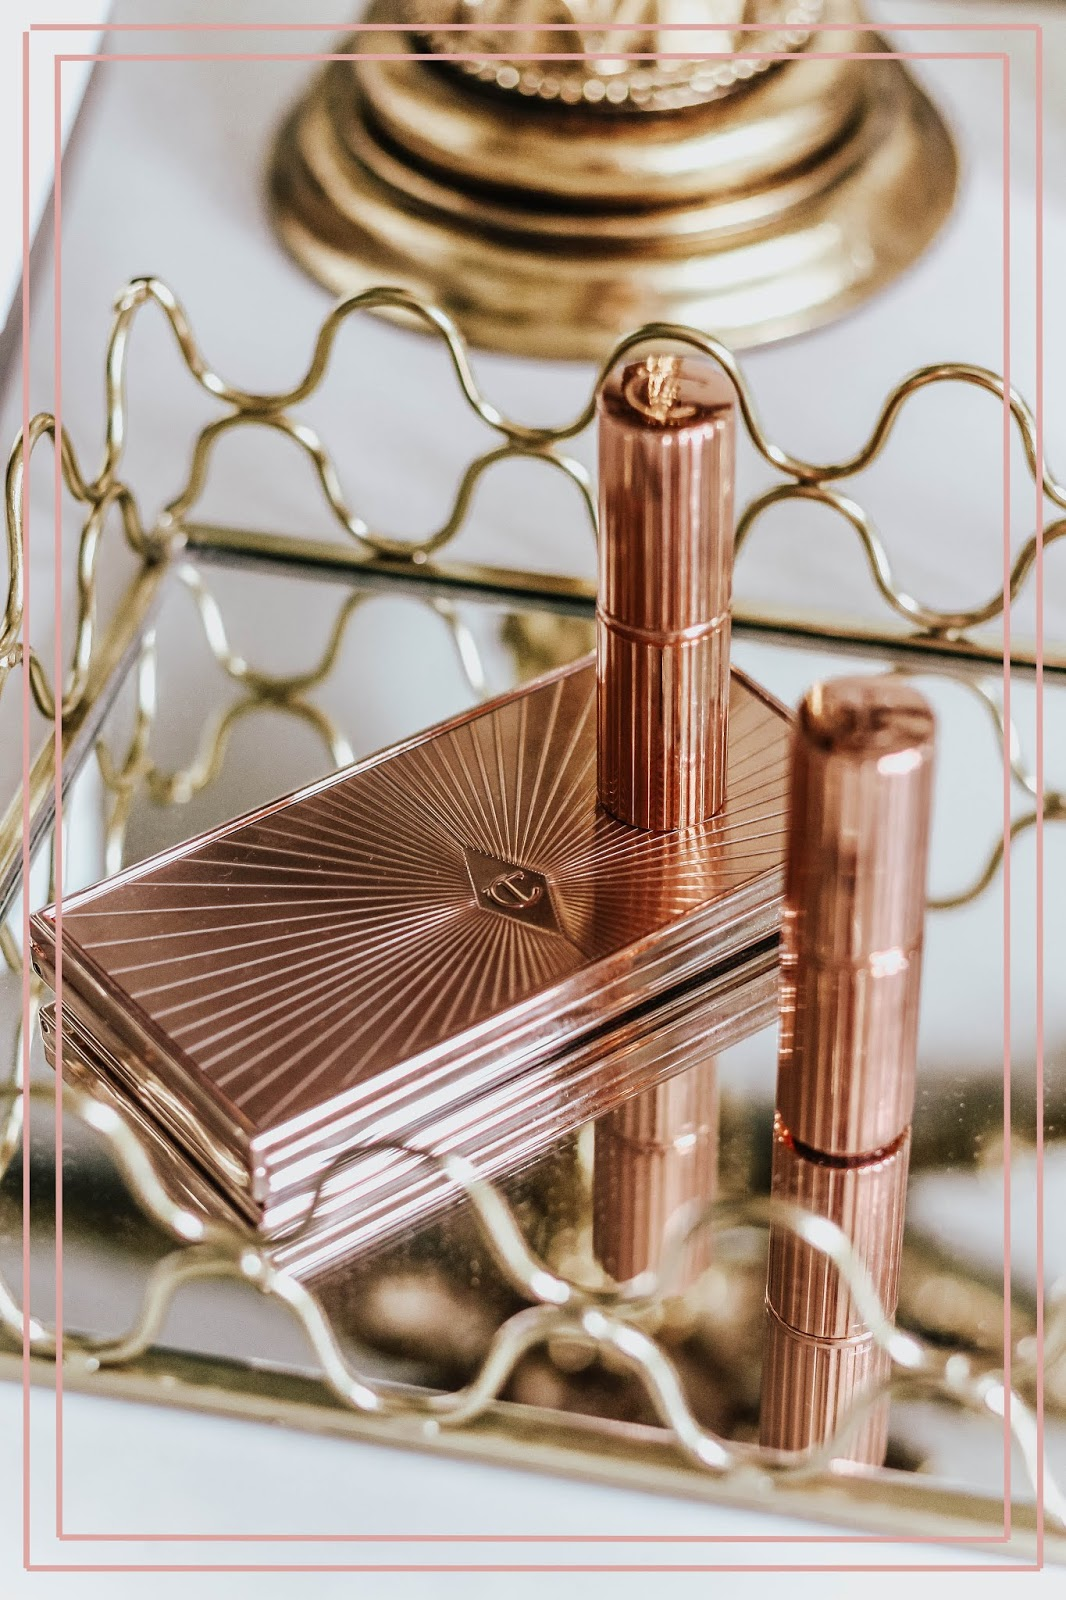 Charlotte Tilbury Rose Gold Packaging Haul